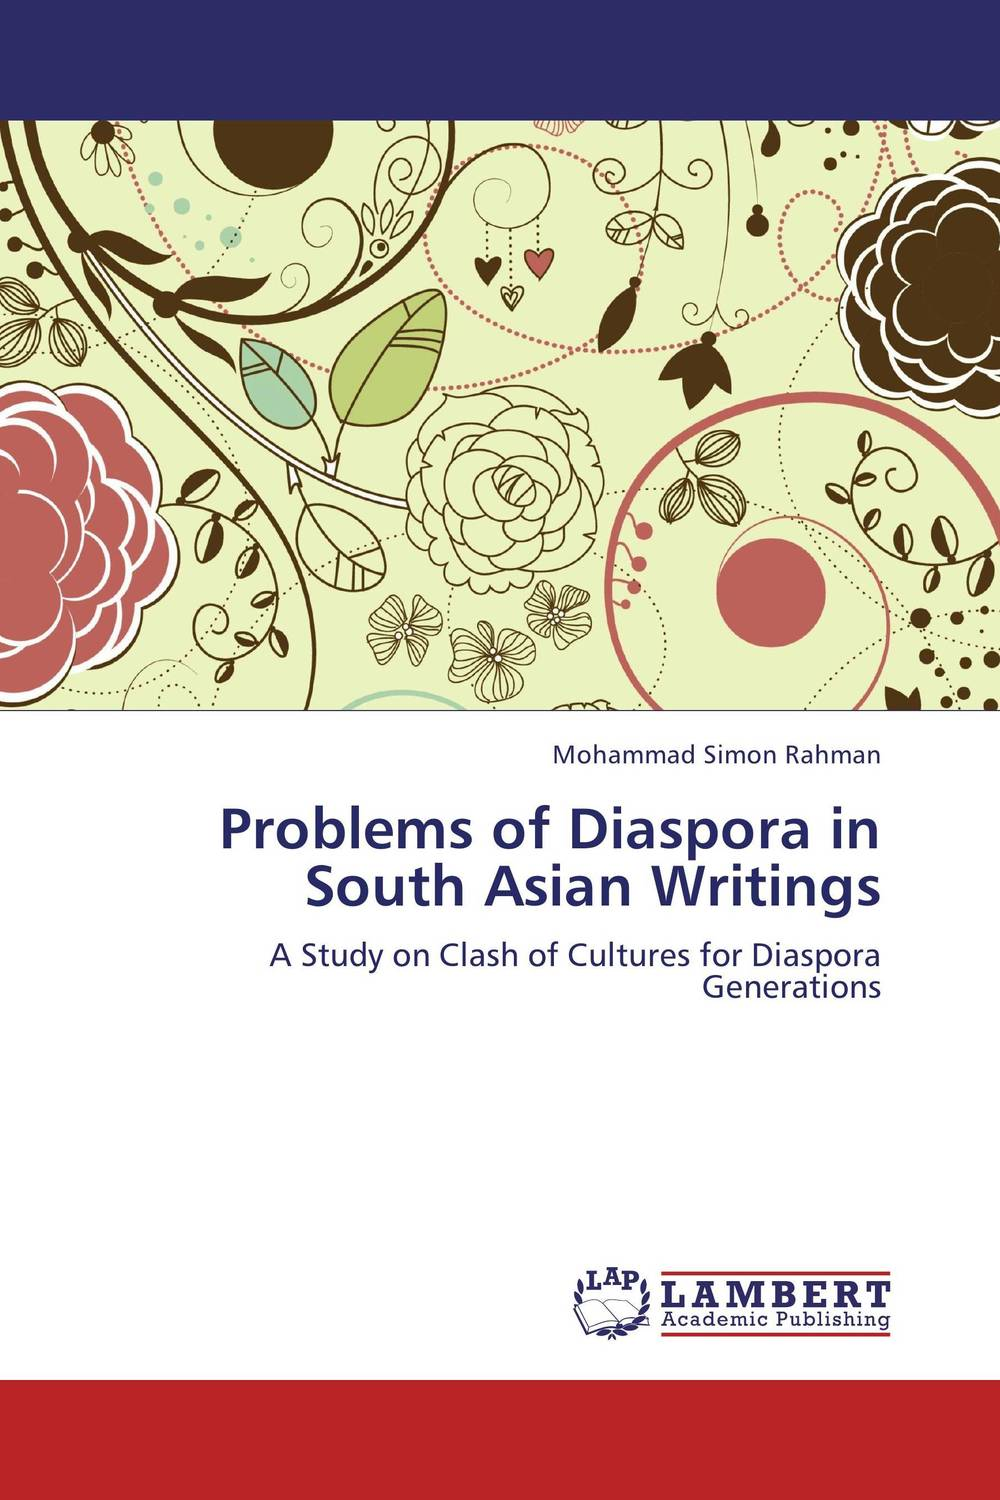 Problems of Diaspora in South Asian Writings